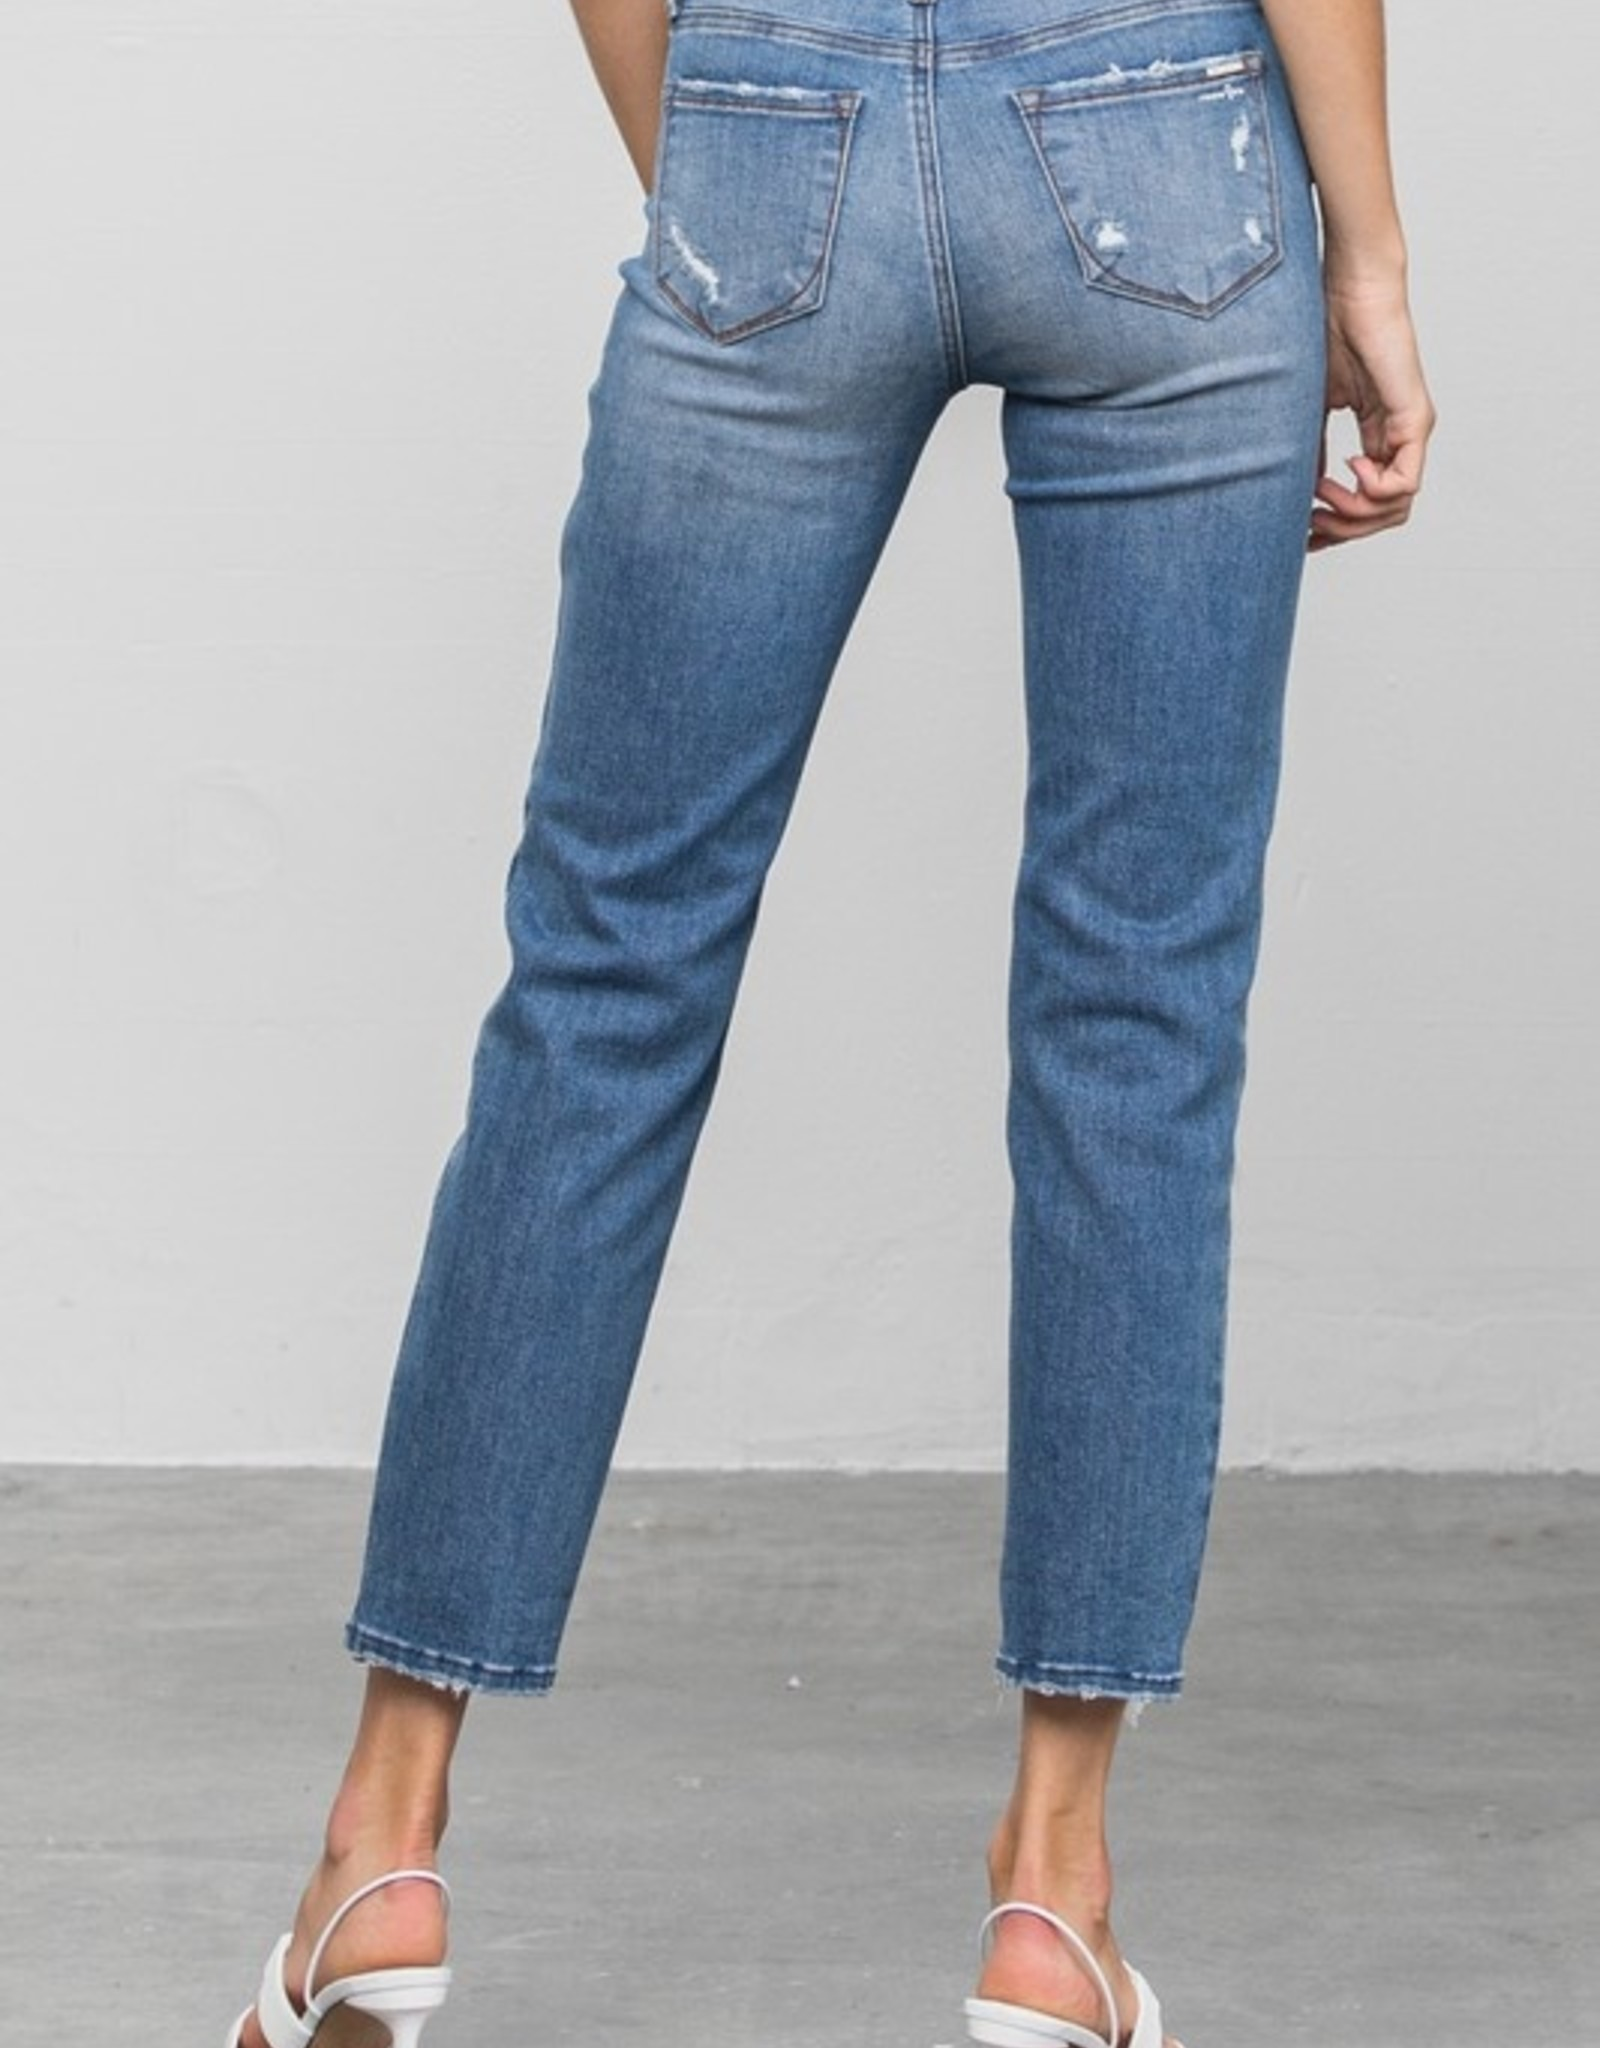 Slim girlfriend jean